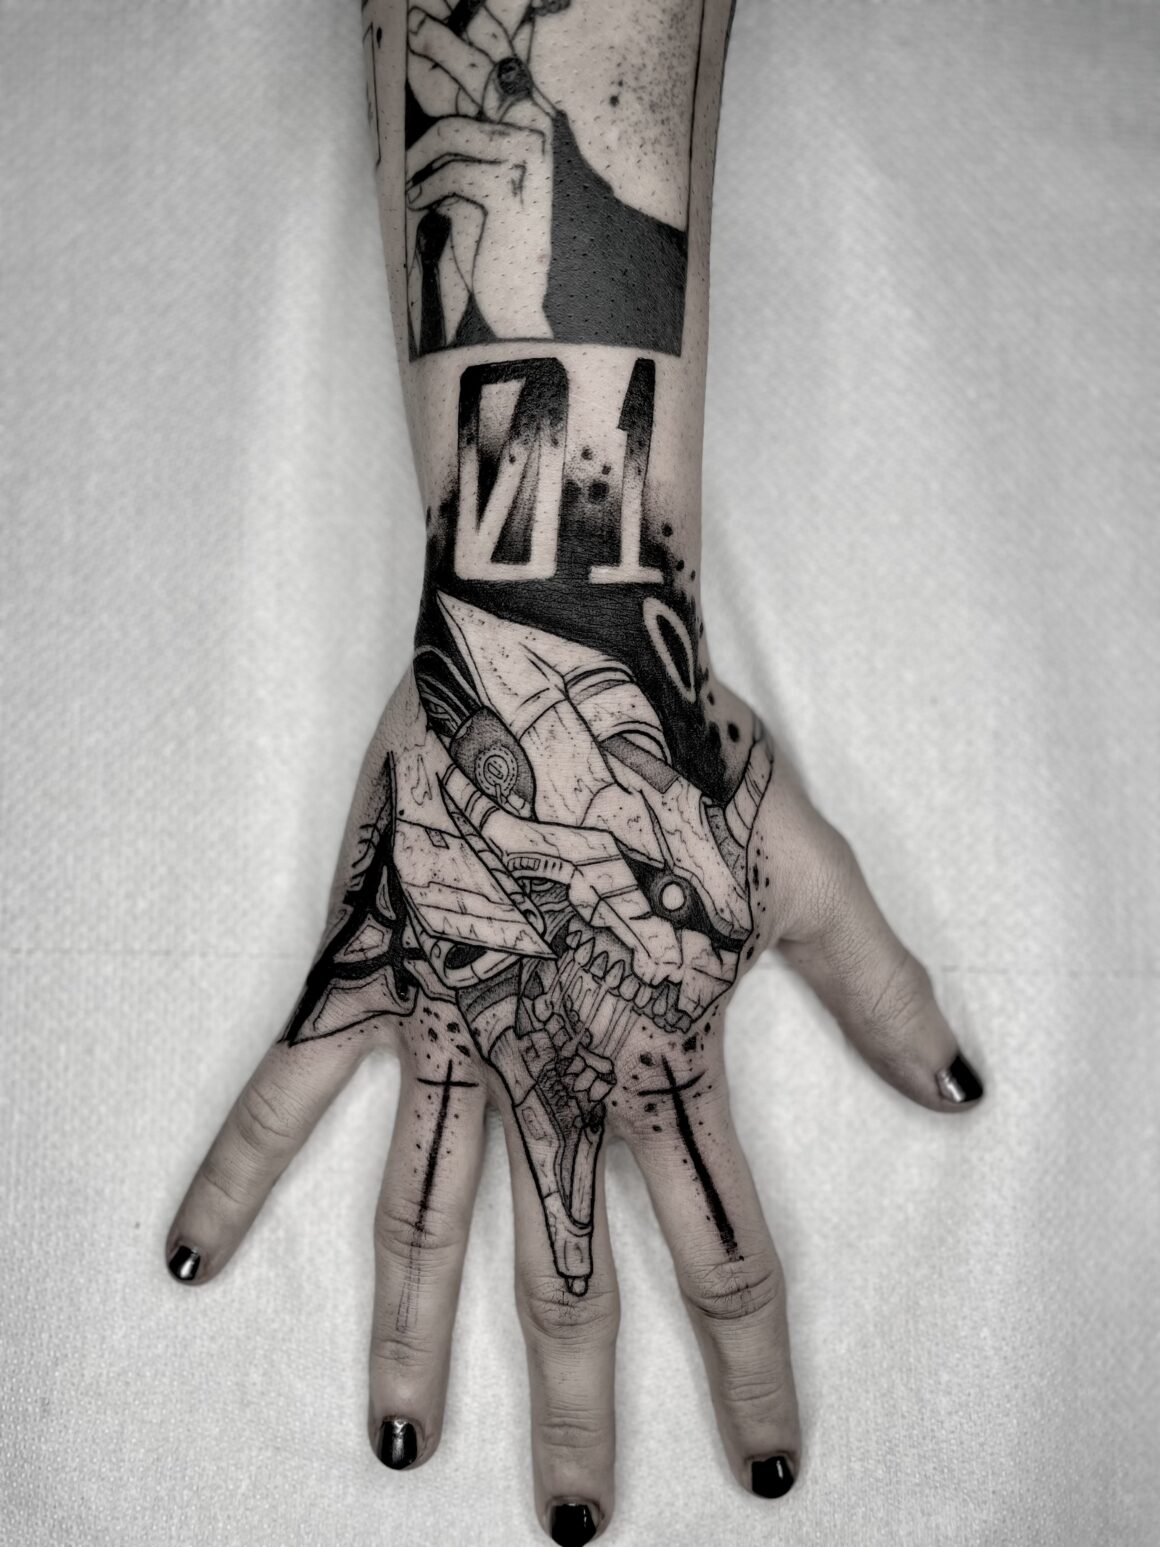 Tattoo by Luca Cospito, @lucky_luchino